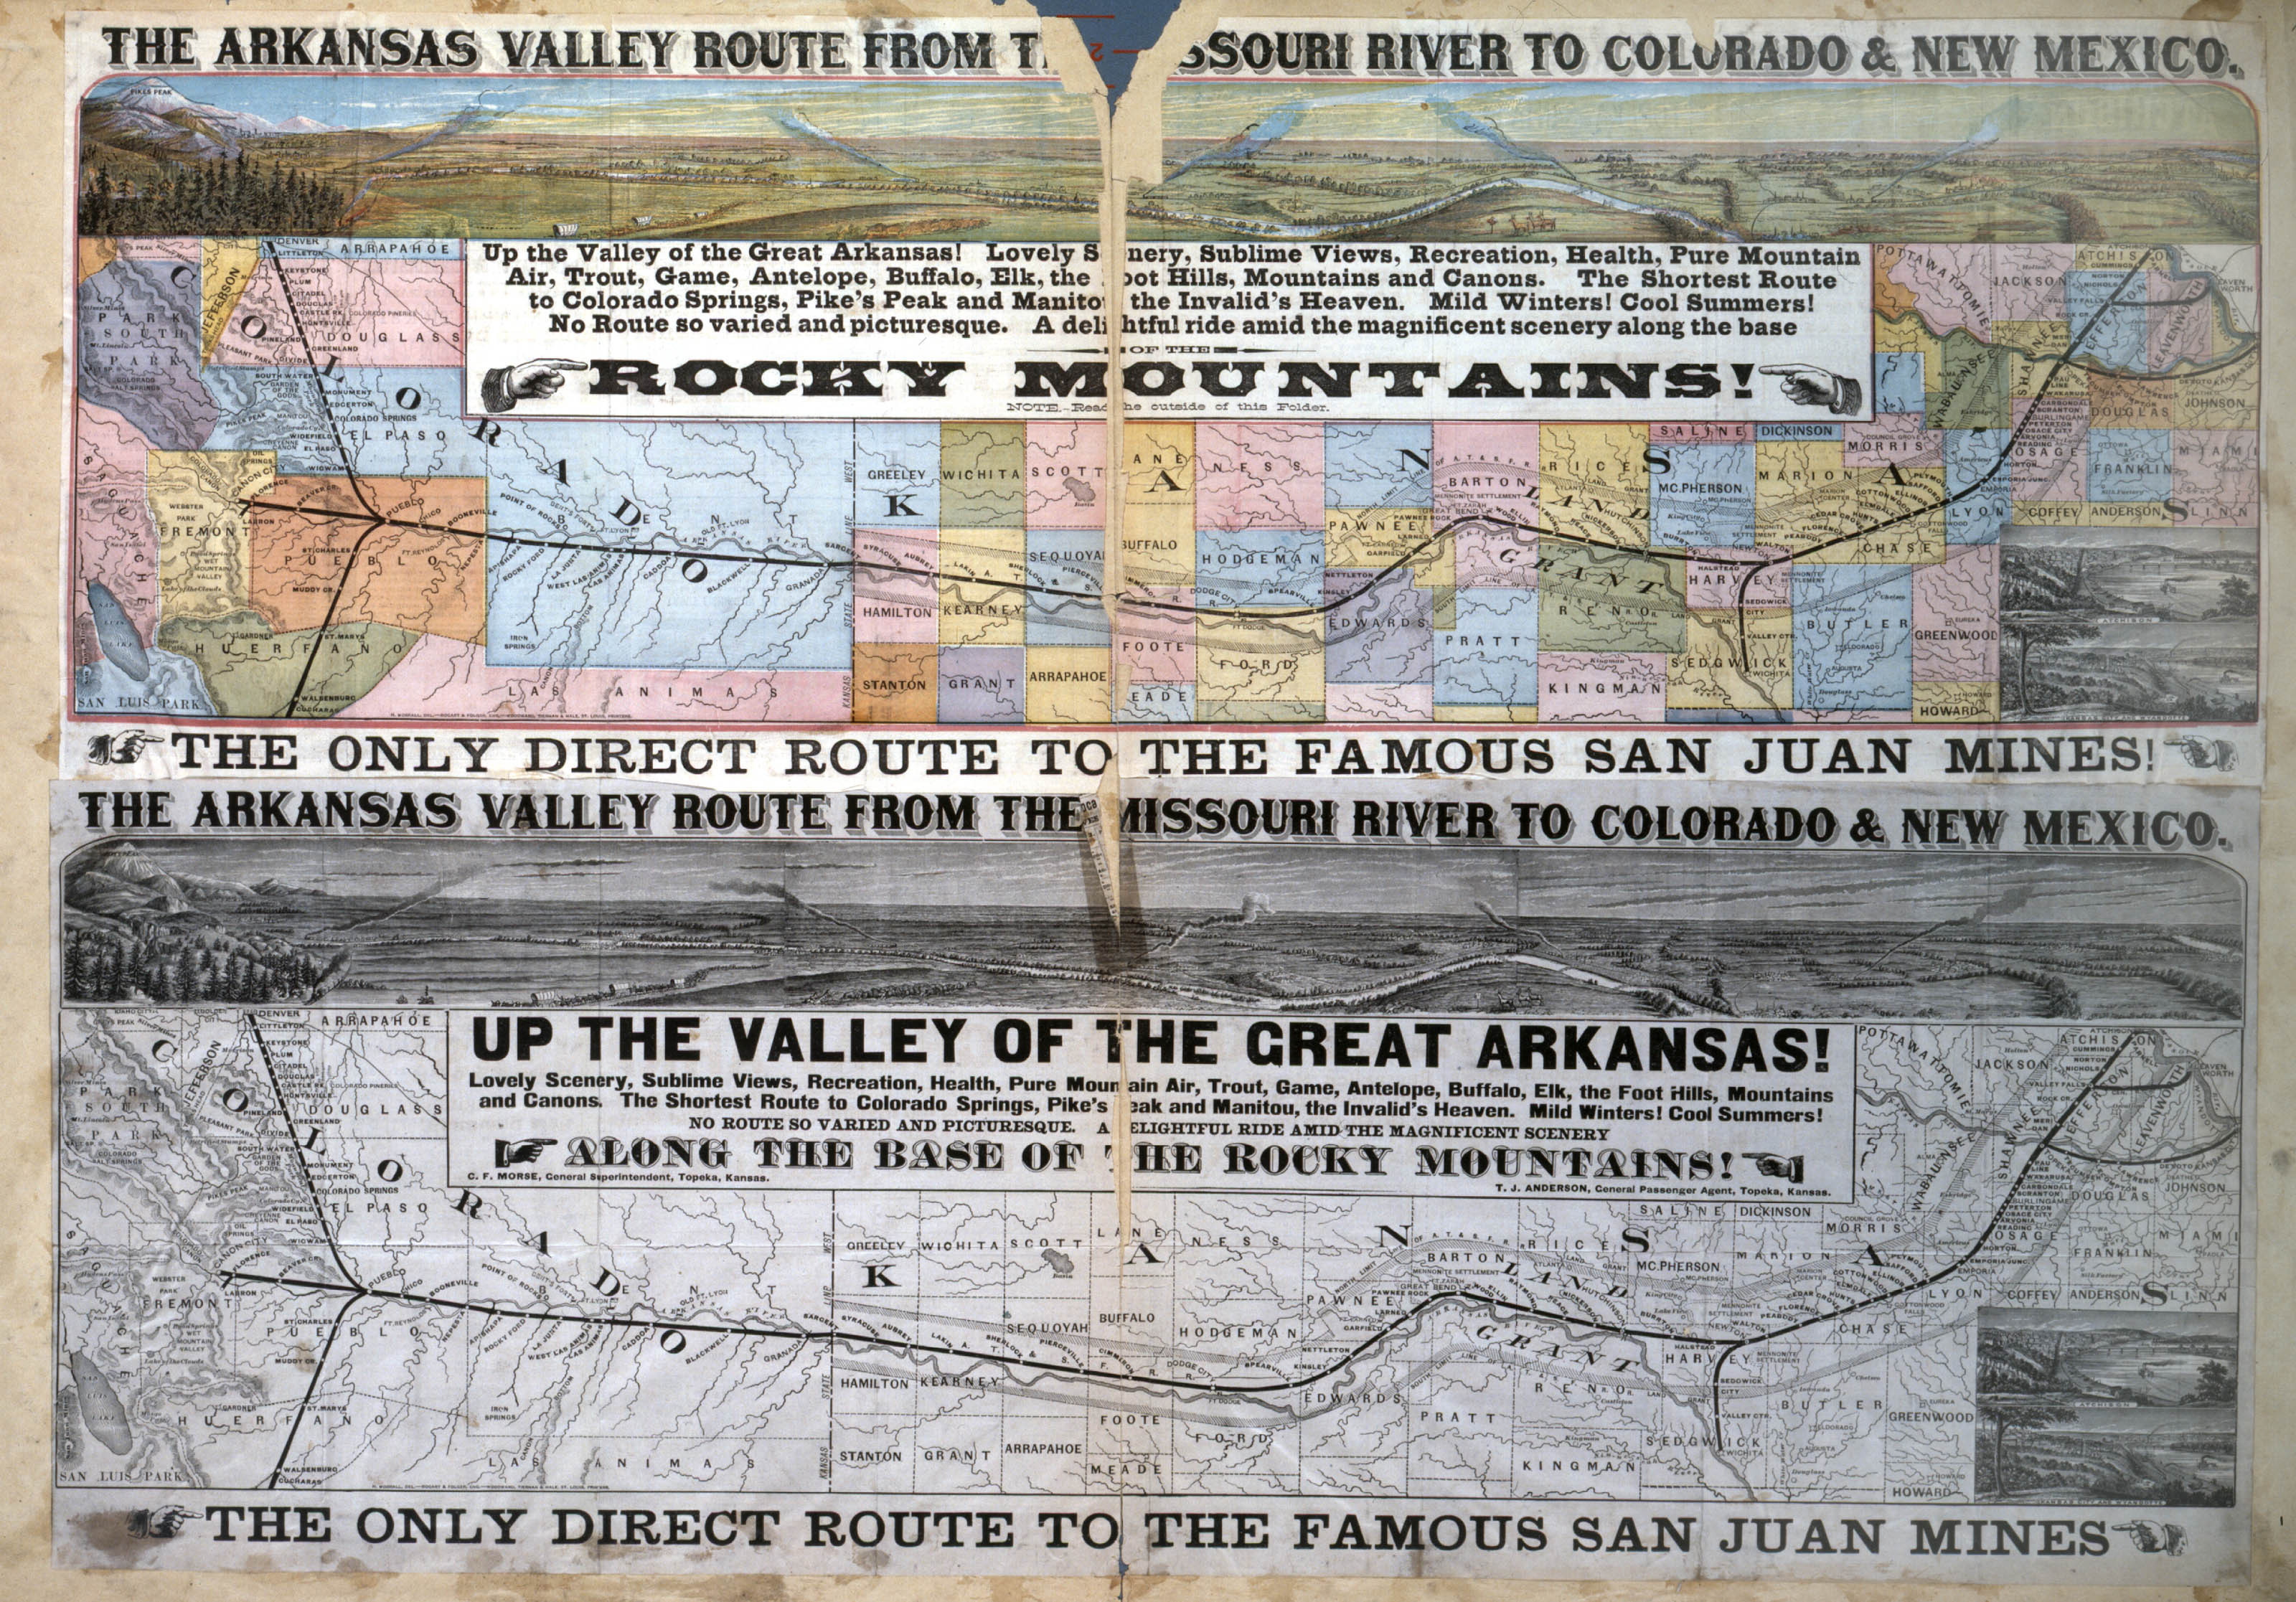 The Arkansas Valley Route from the Missouri River to Colorado and New Mexico